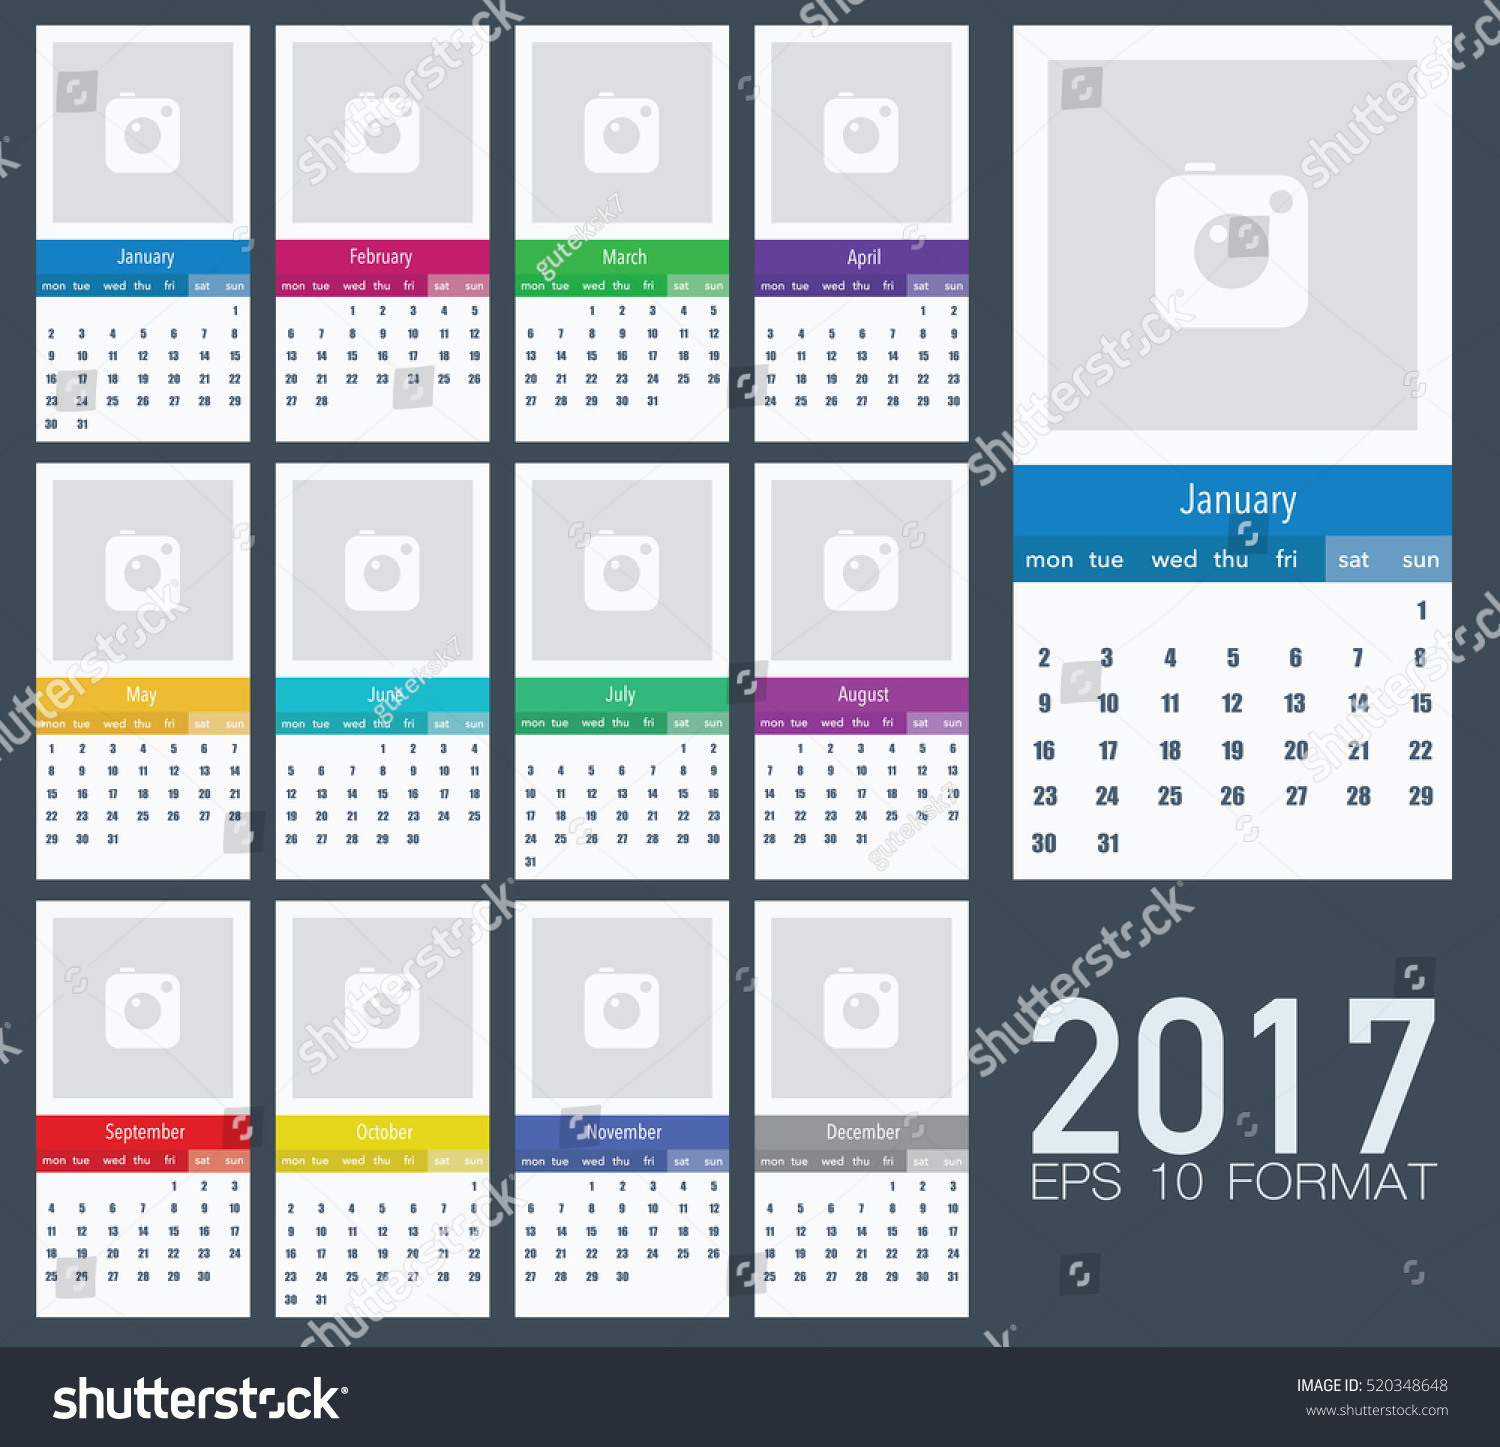 Calendar Design Material : Calendar for with simply material design and photos